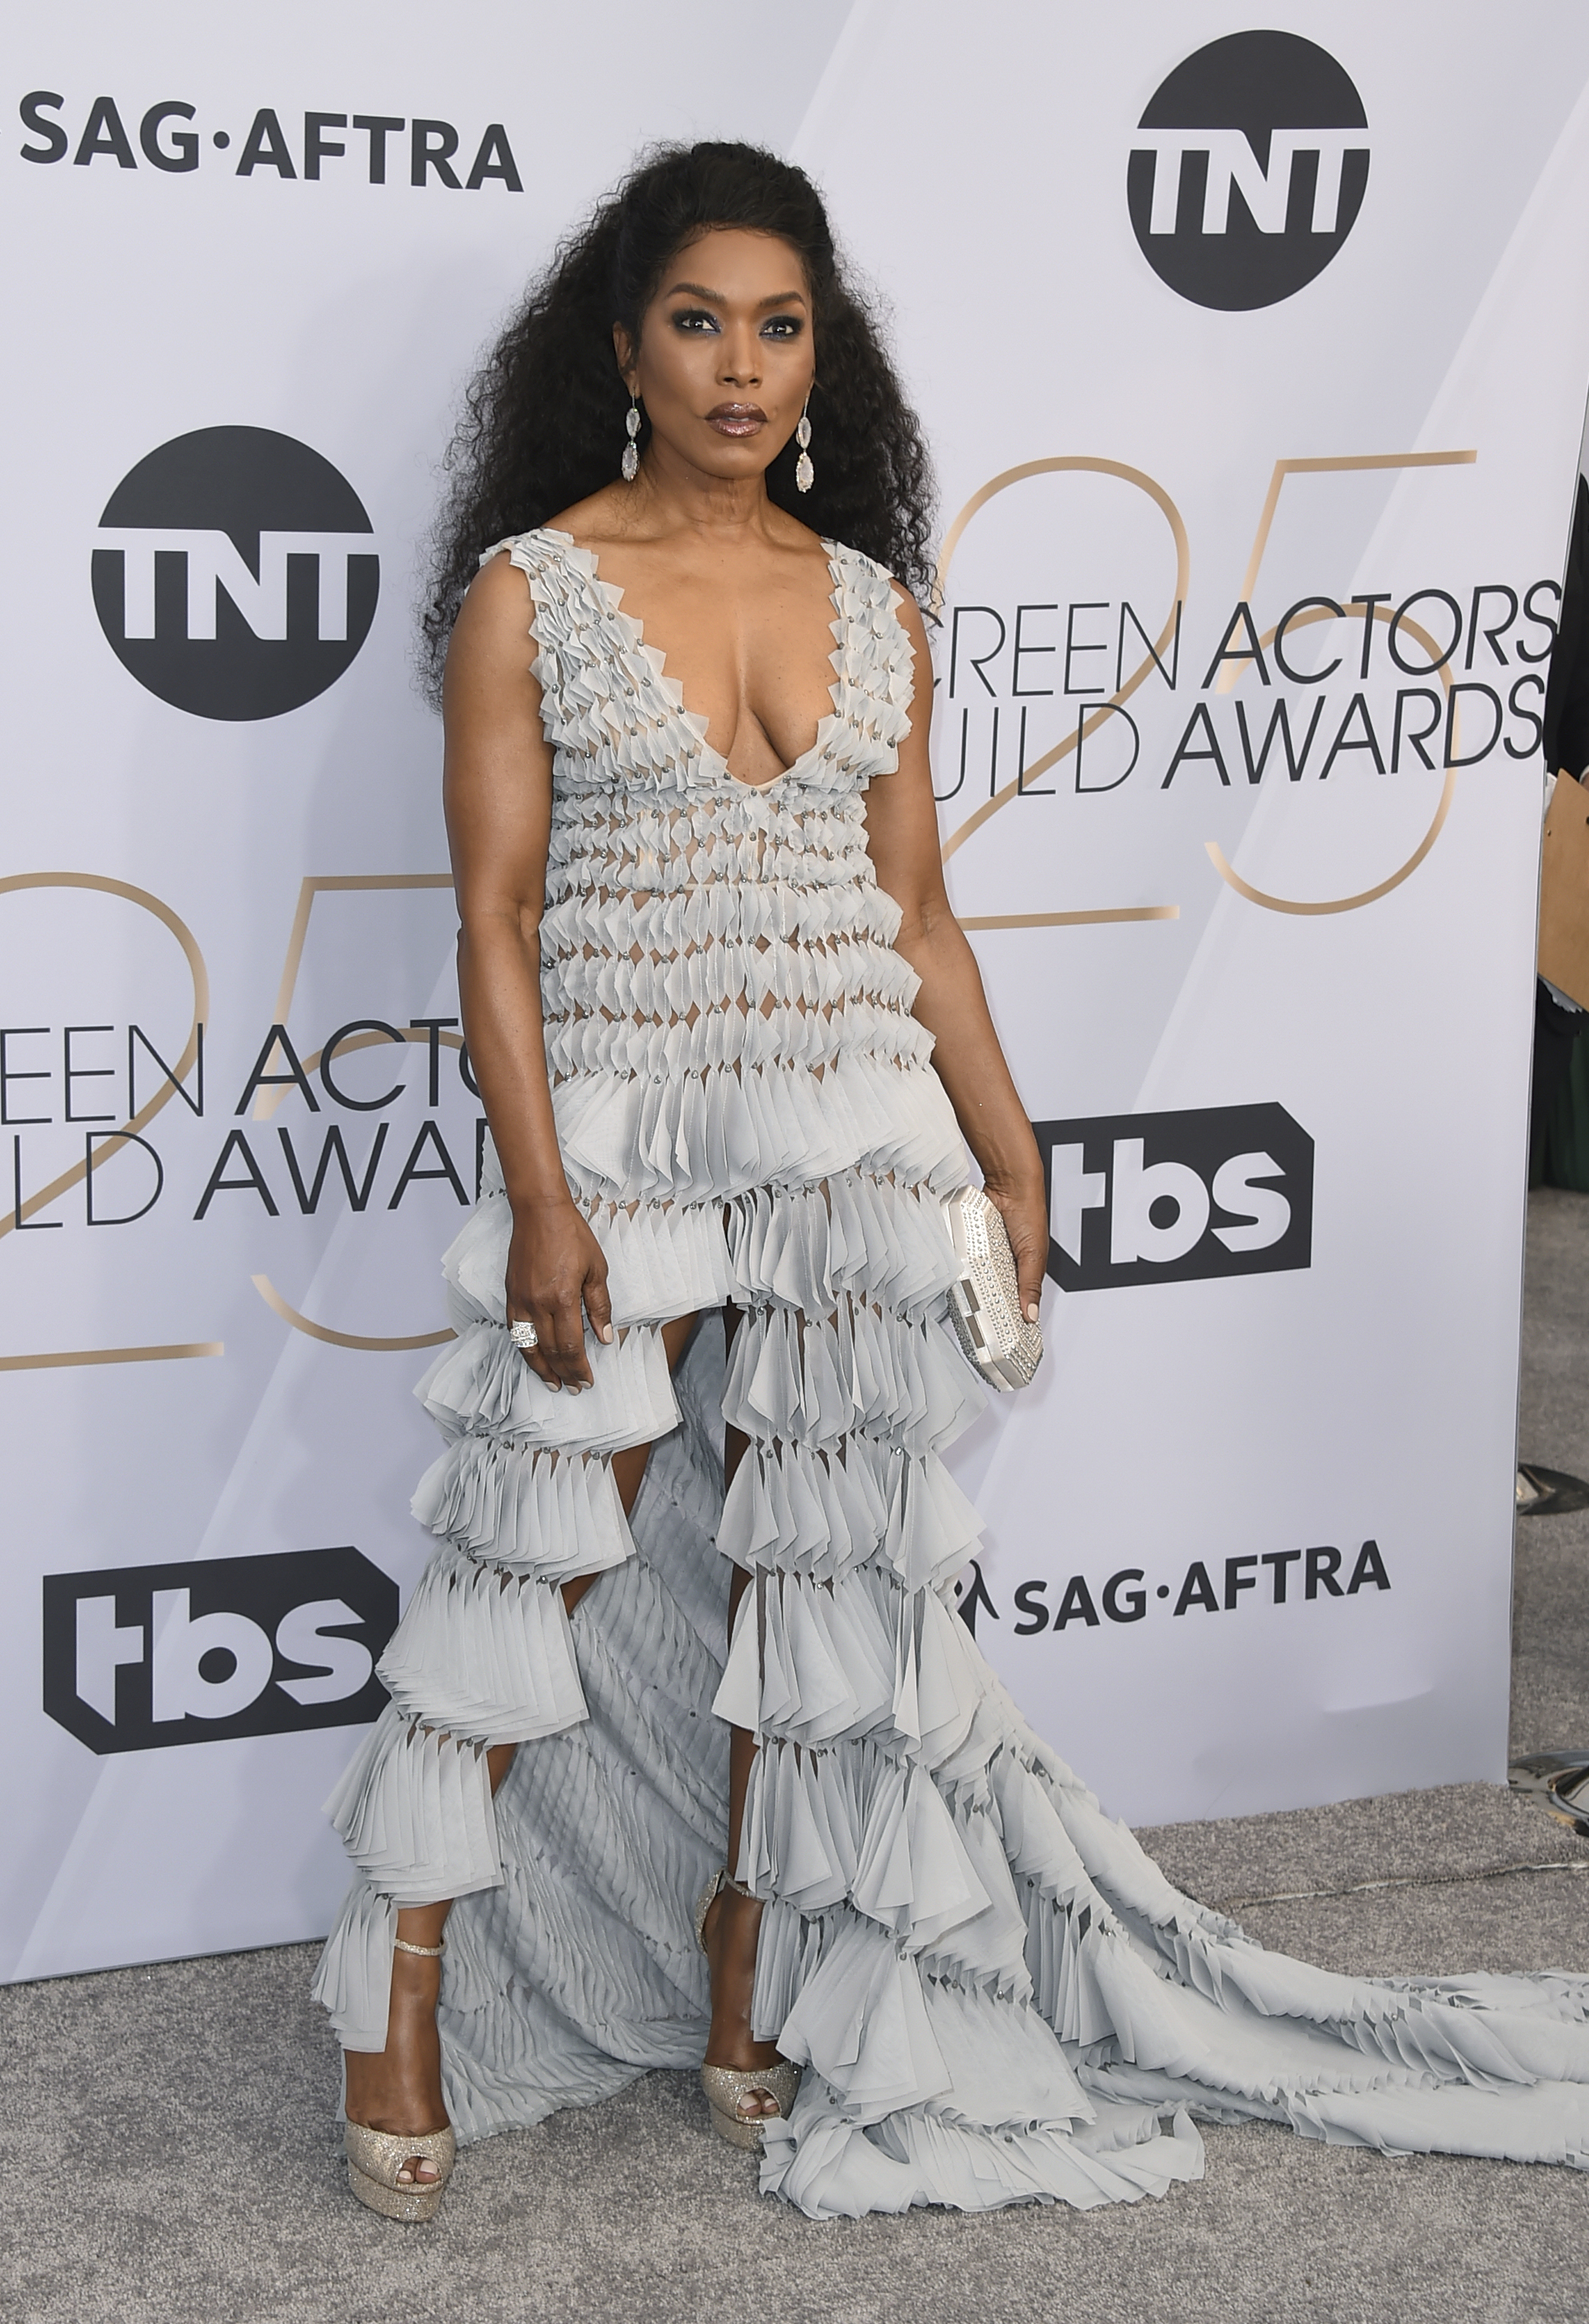 Angela Bassett arrives at the 25th annual Screen Actors Guild Awards at the Shrine Auditorium & Expo Hall on Sunday, Jan. 27, 2019, in Los Angeles. (Photo by Jordan Strauss/Invision/AP)